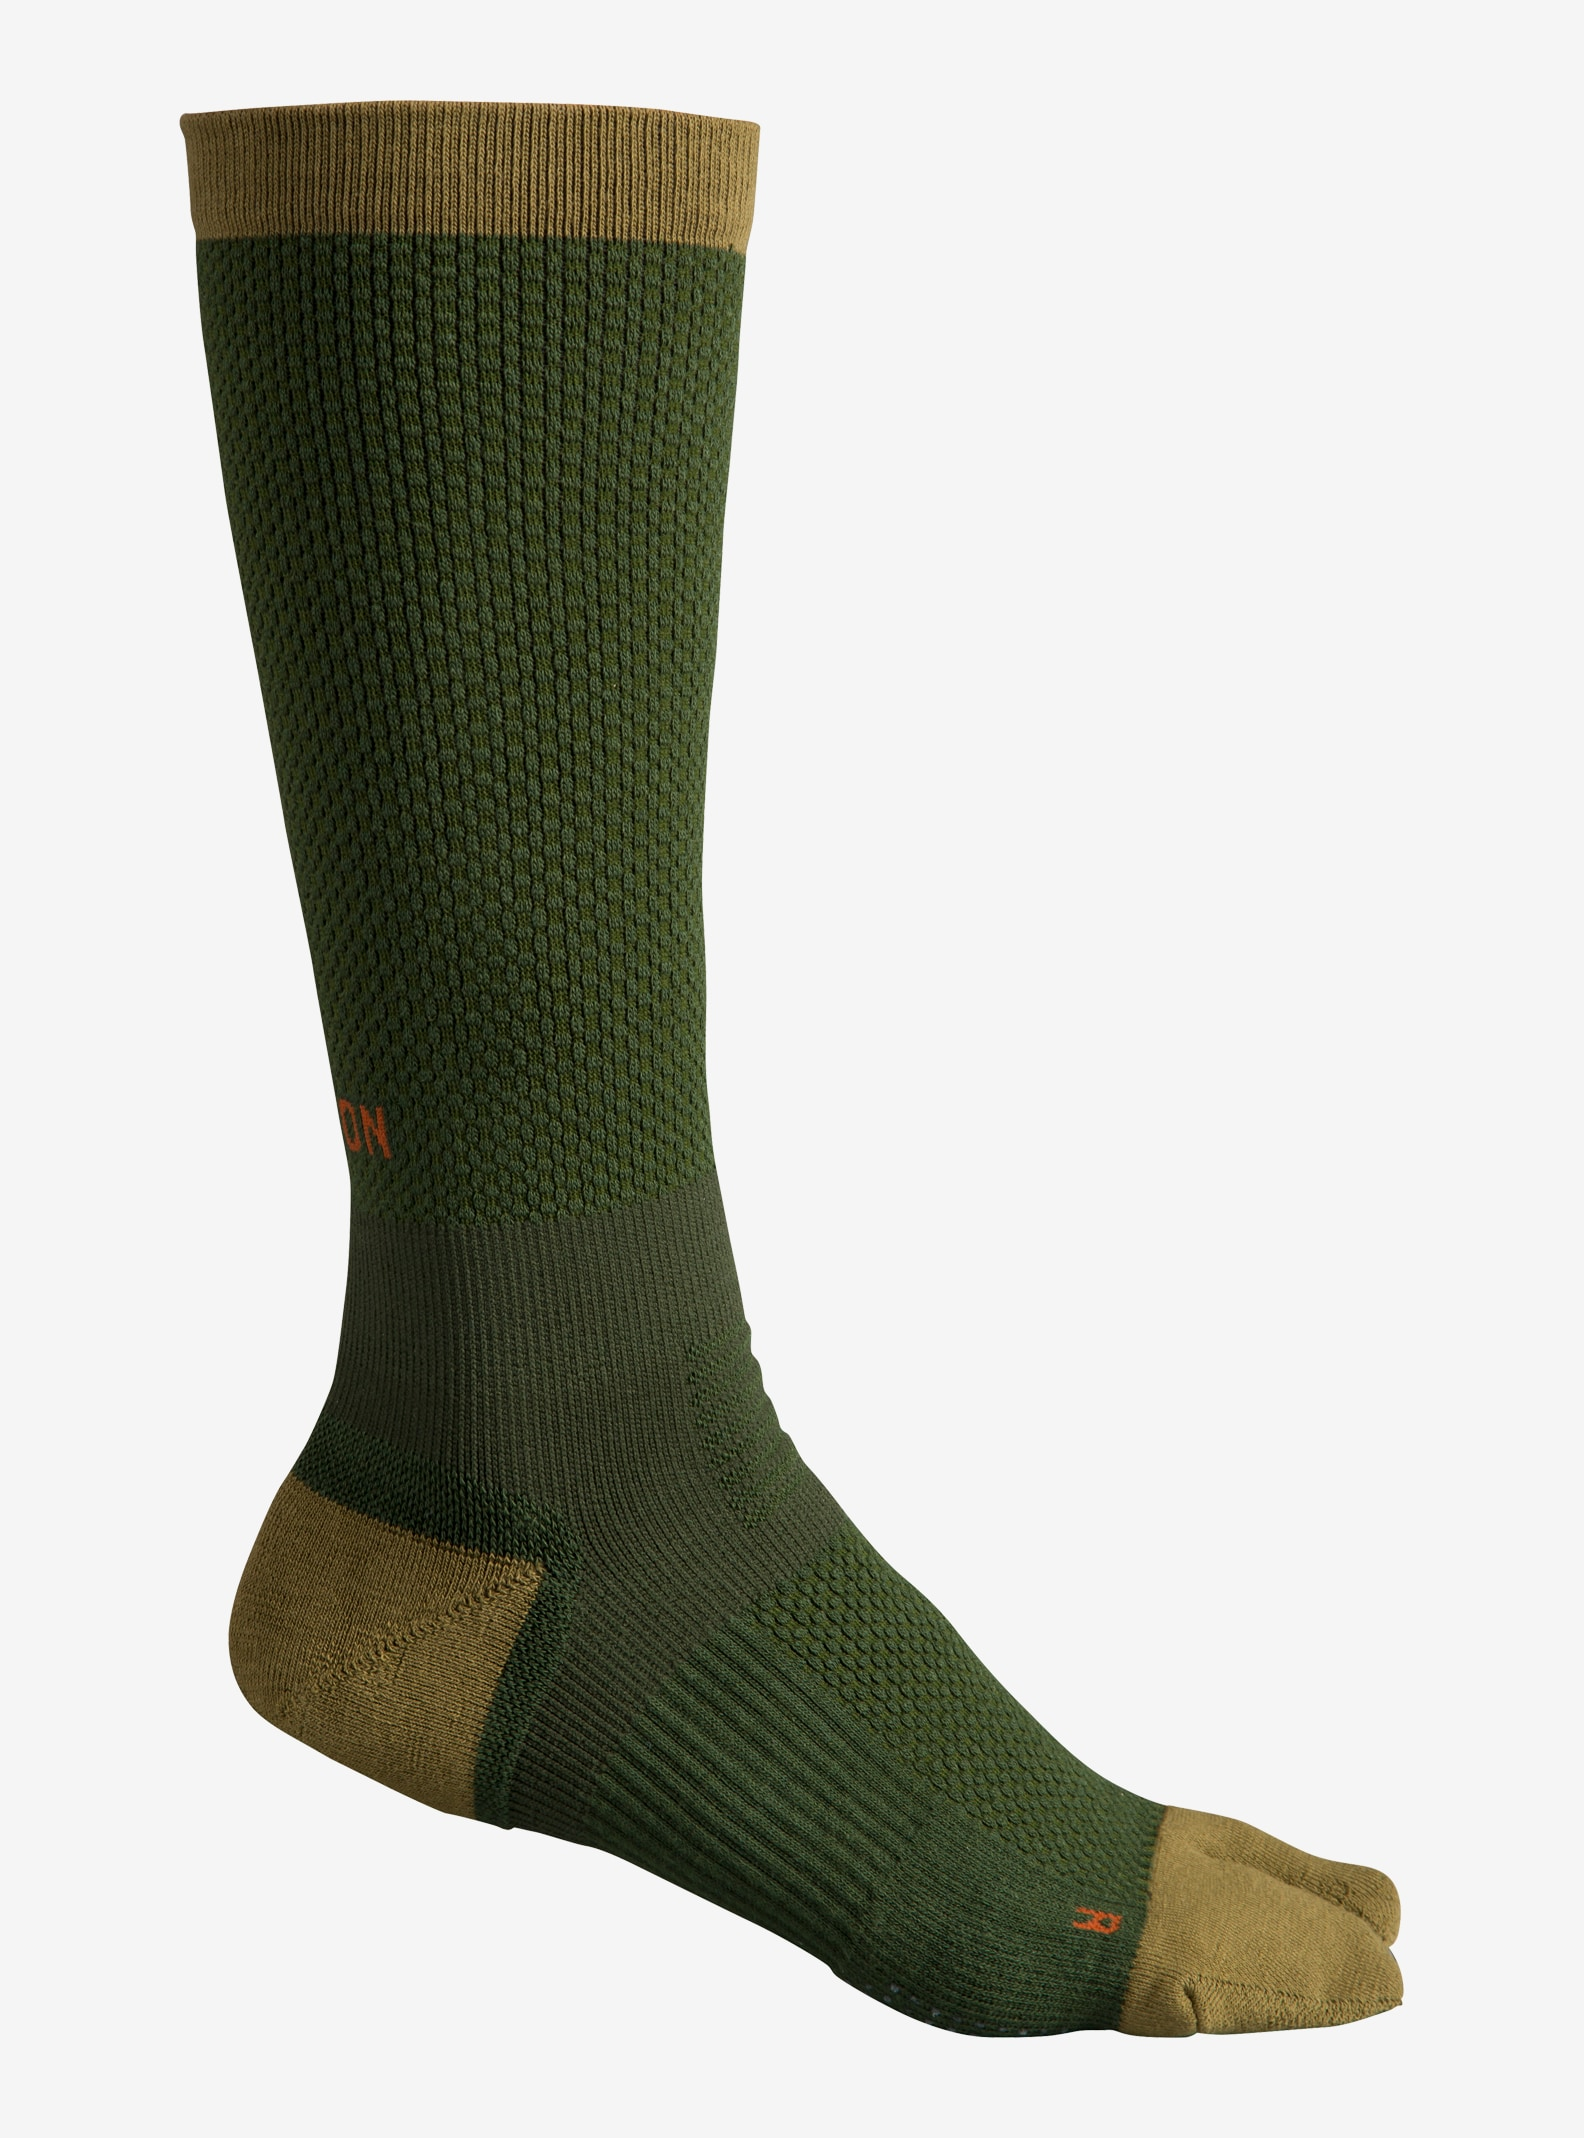 Burton Metaphor Sock shown in Rifle Green